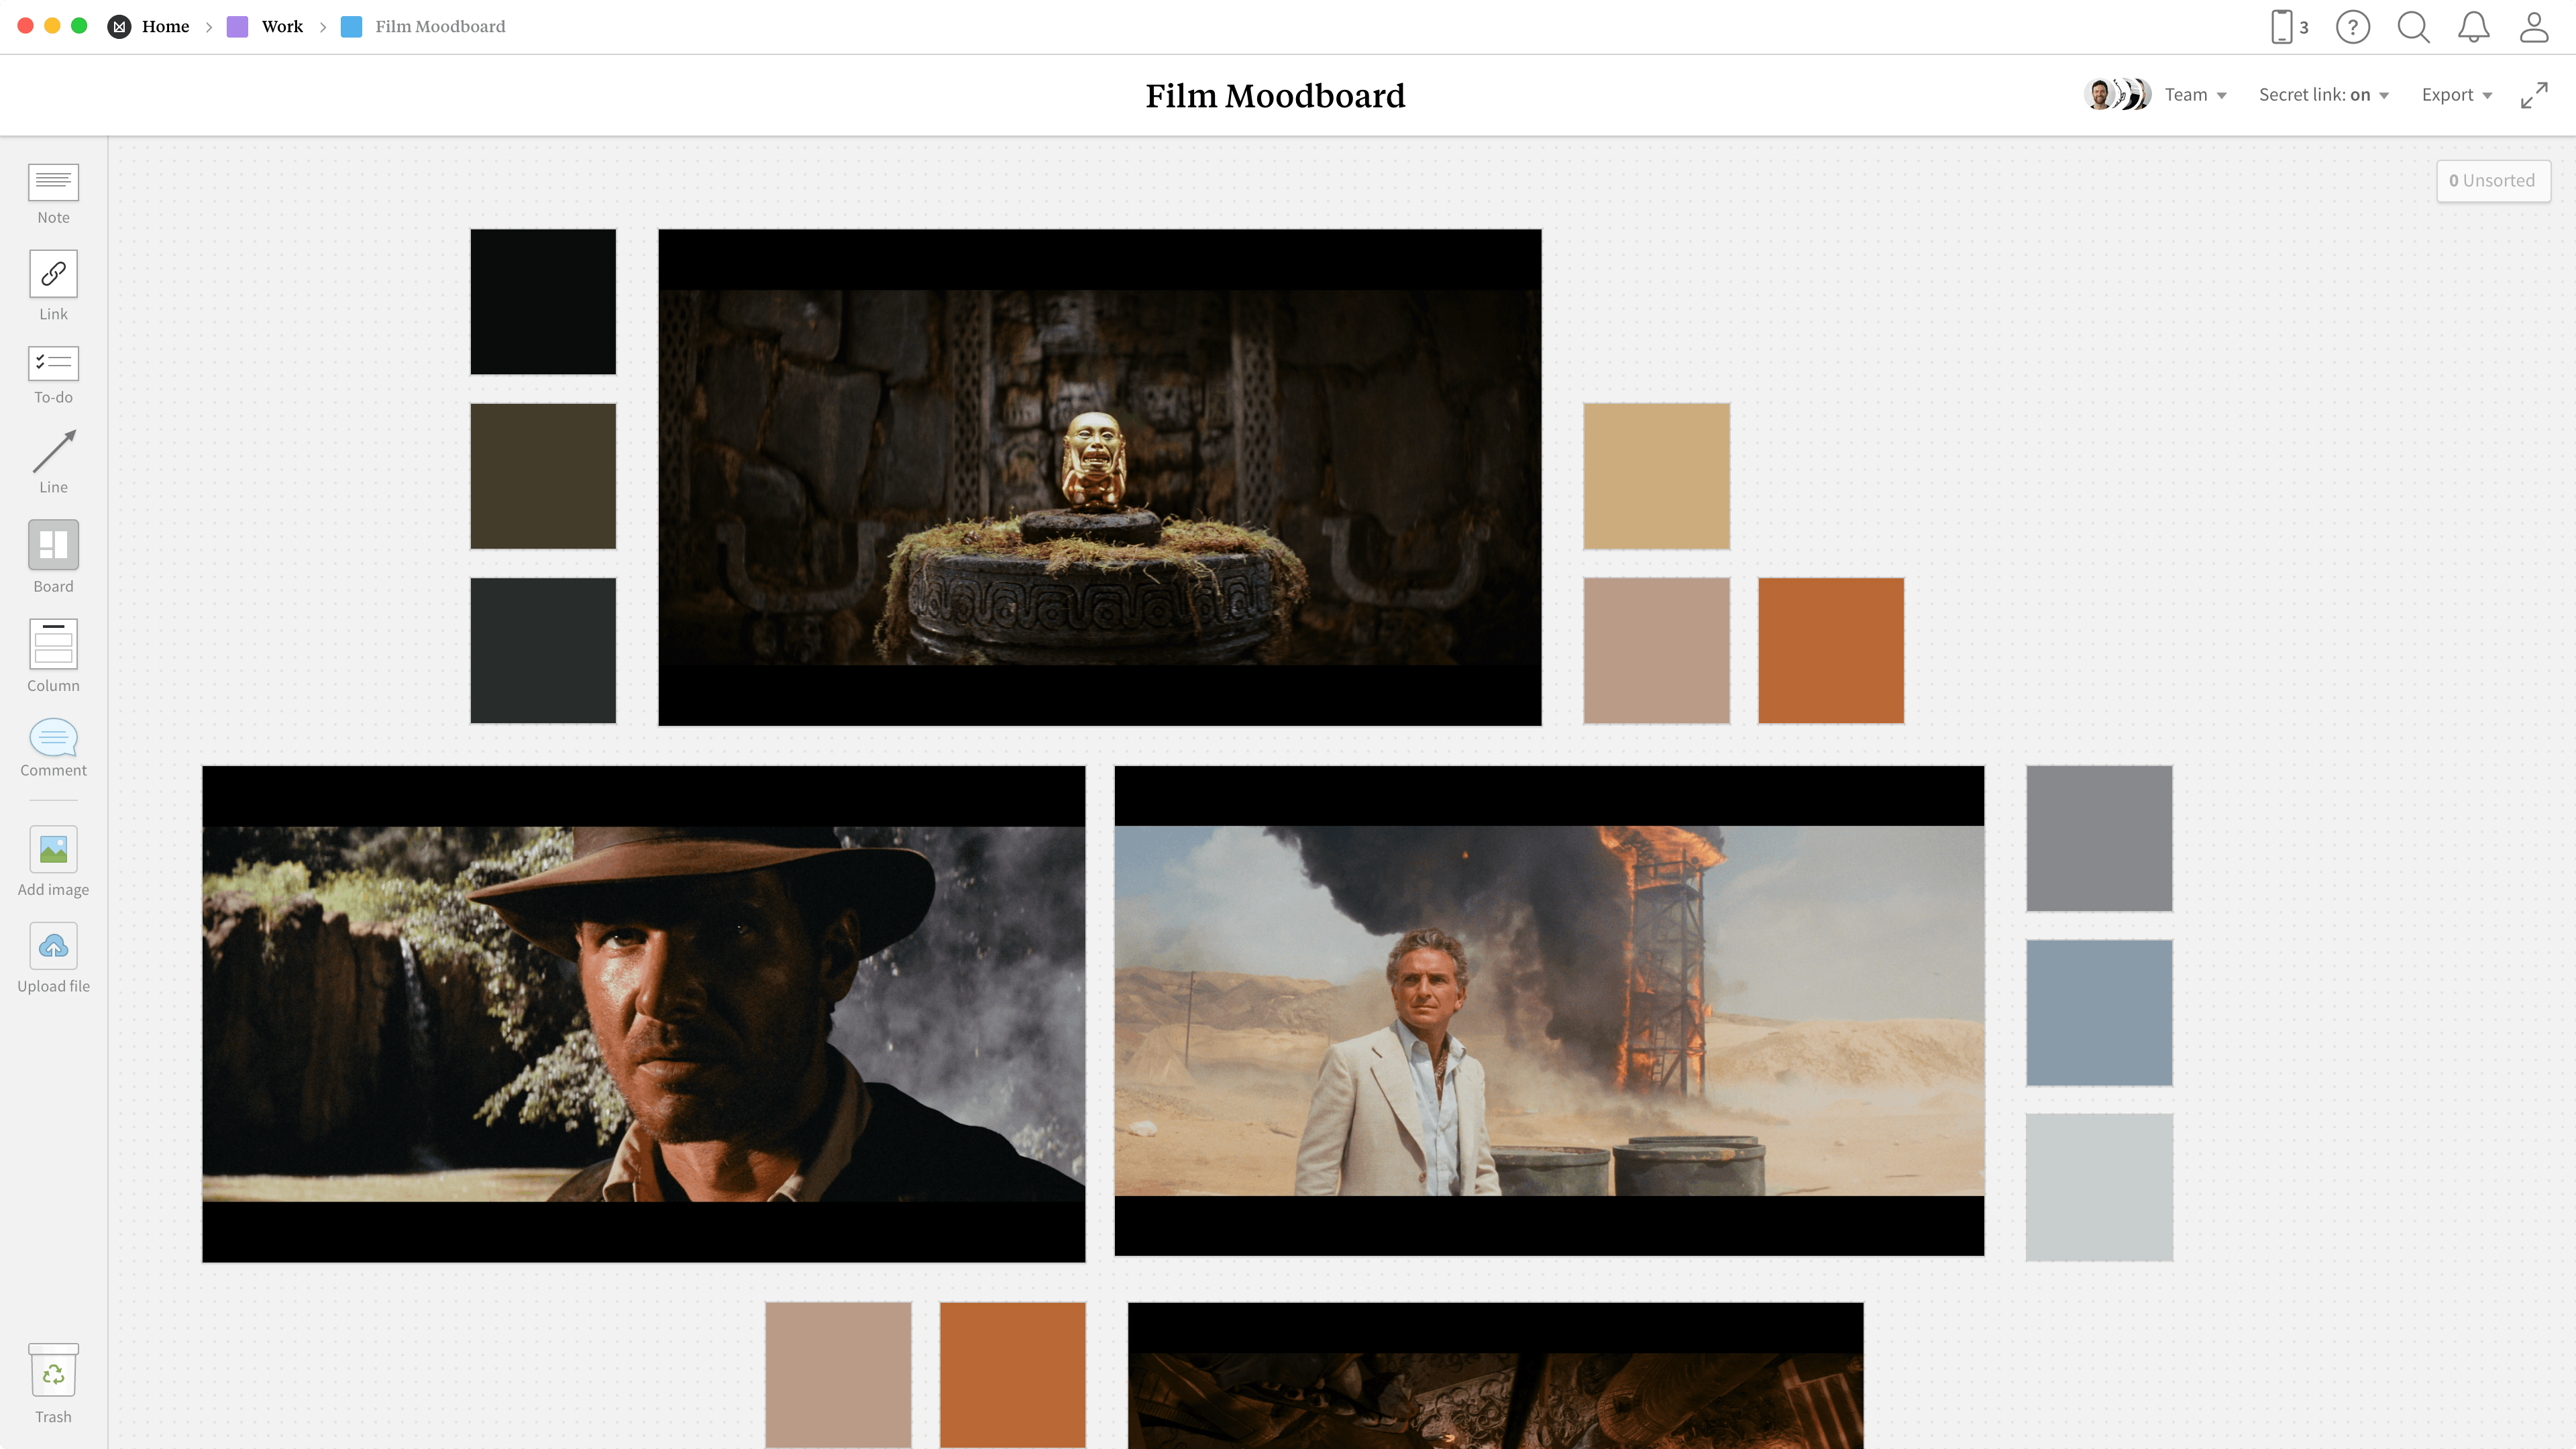 Completed Filmmaking moodboard template in Milanote app